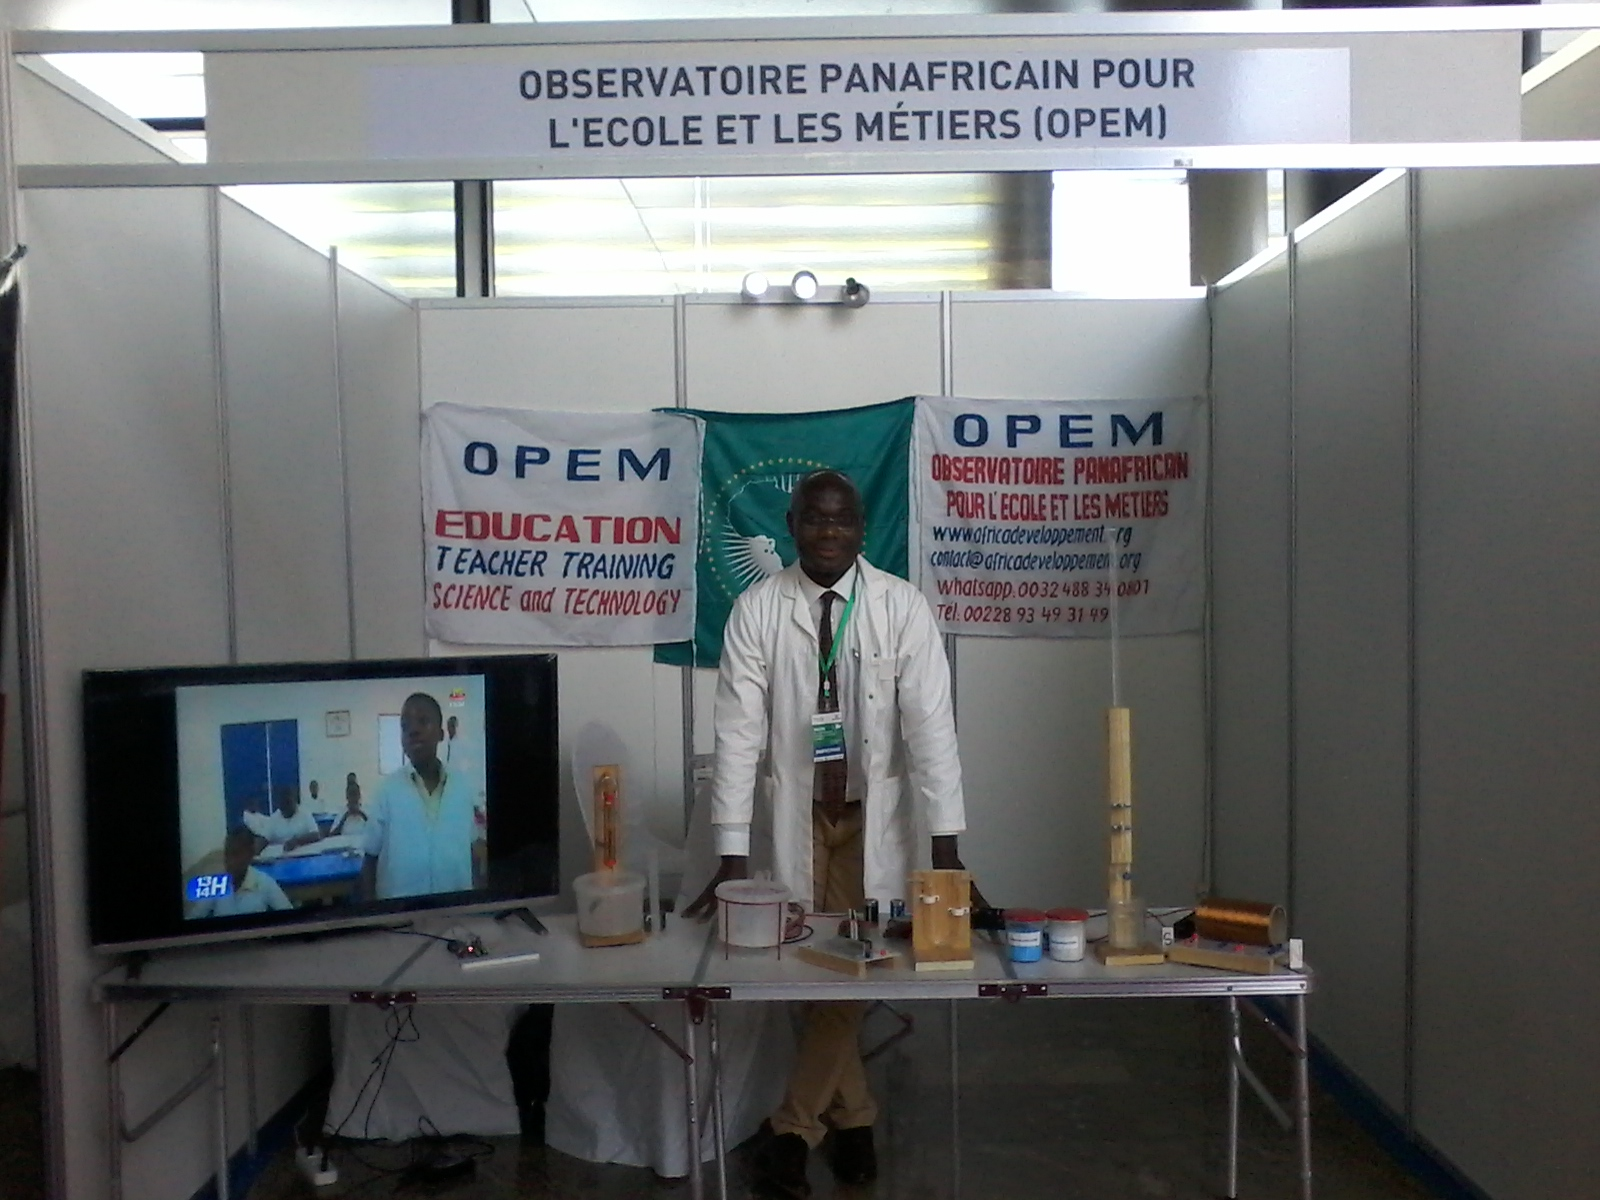 https://www.africadeveloppement.org/wp-content/uploads/2018/10/OPEM_STAND.jpg